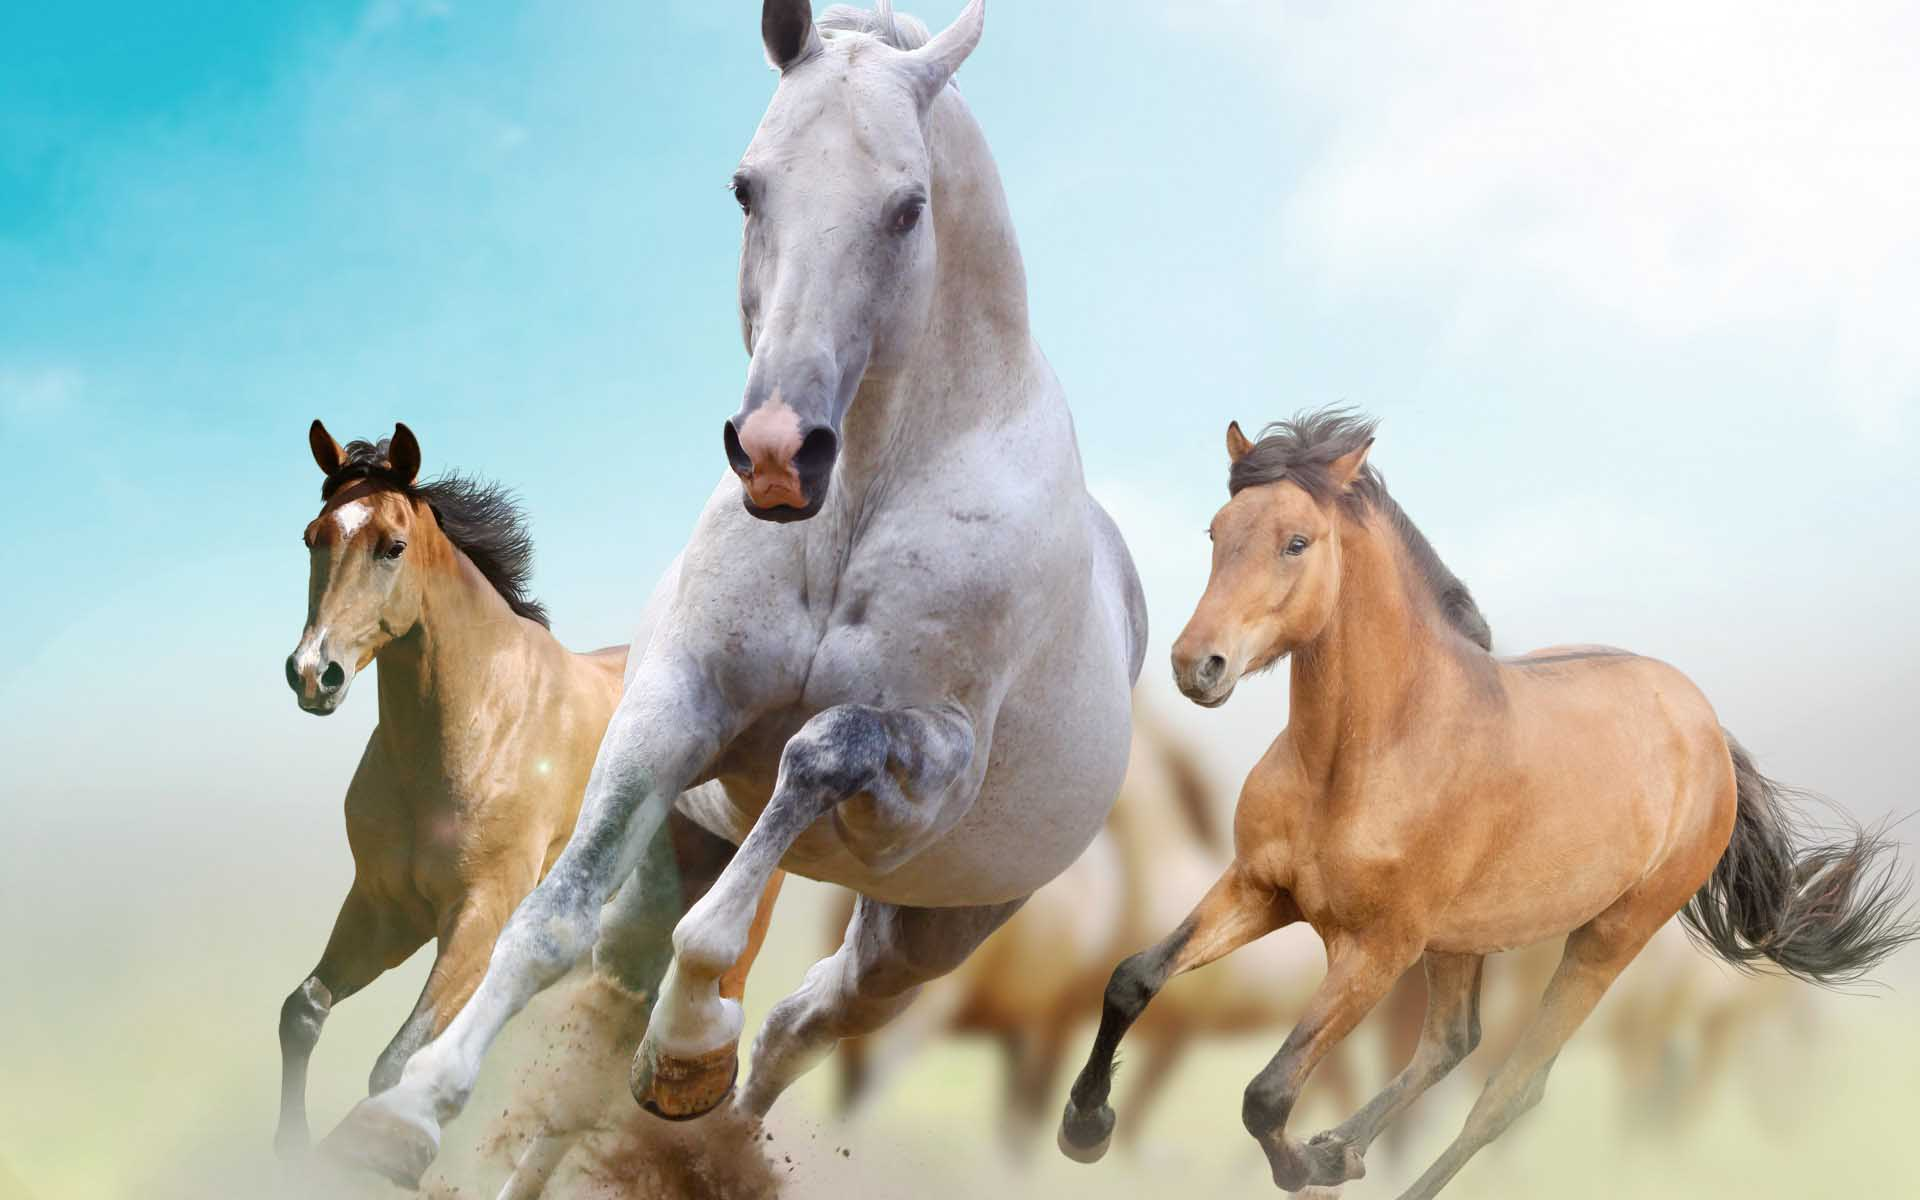 15 Animal Scraps » Racing Horse Hd Wallpaper 920 :: Horse ...